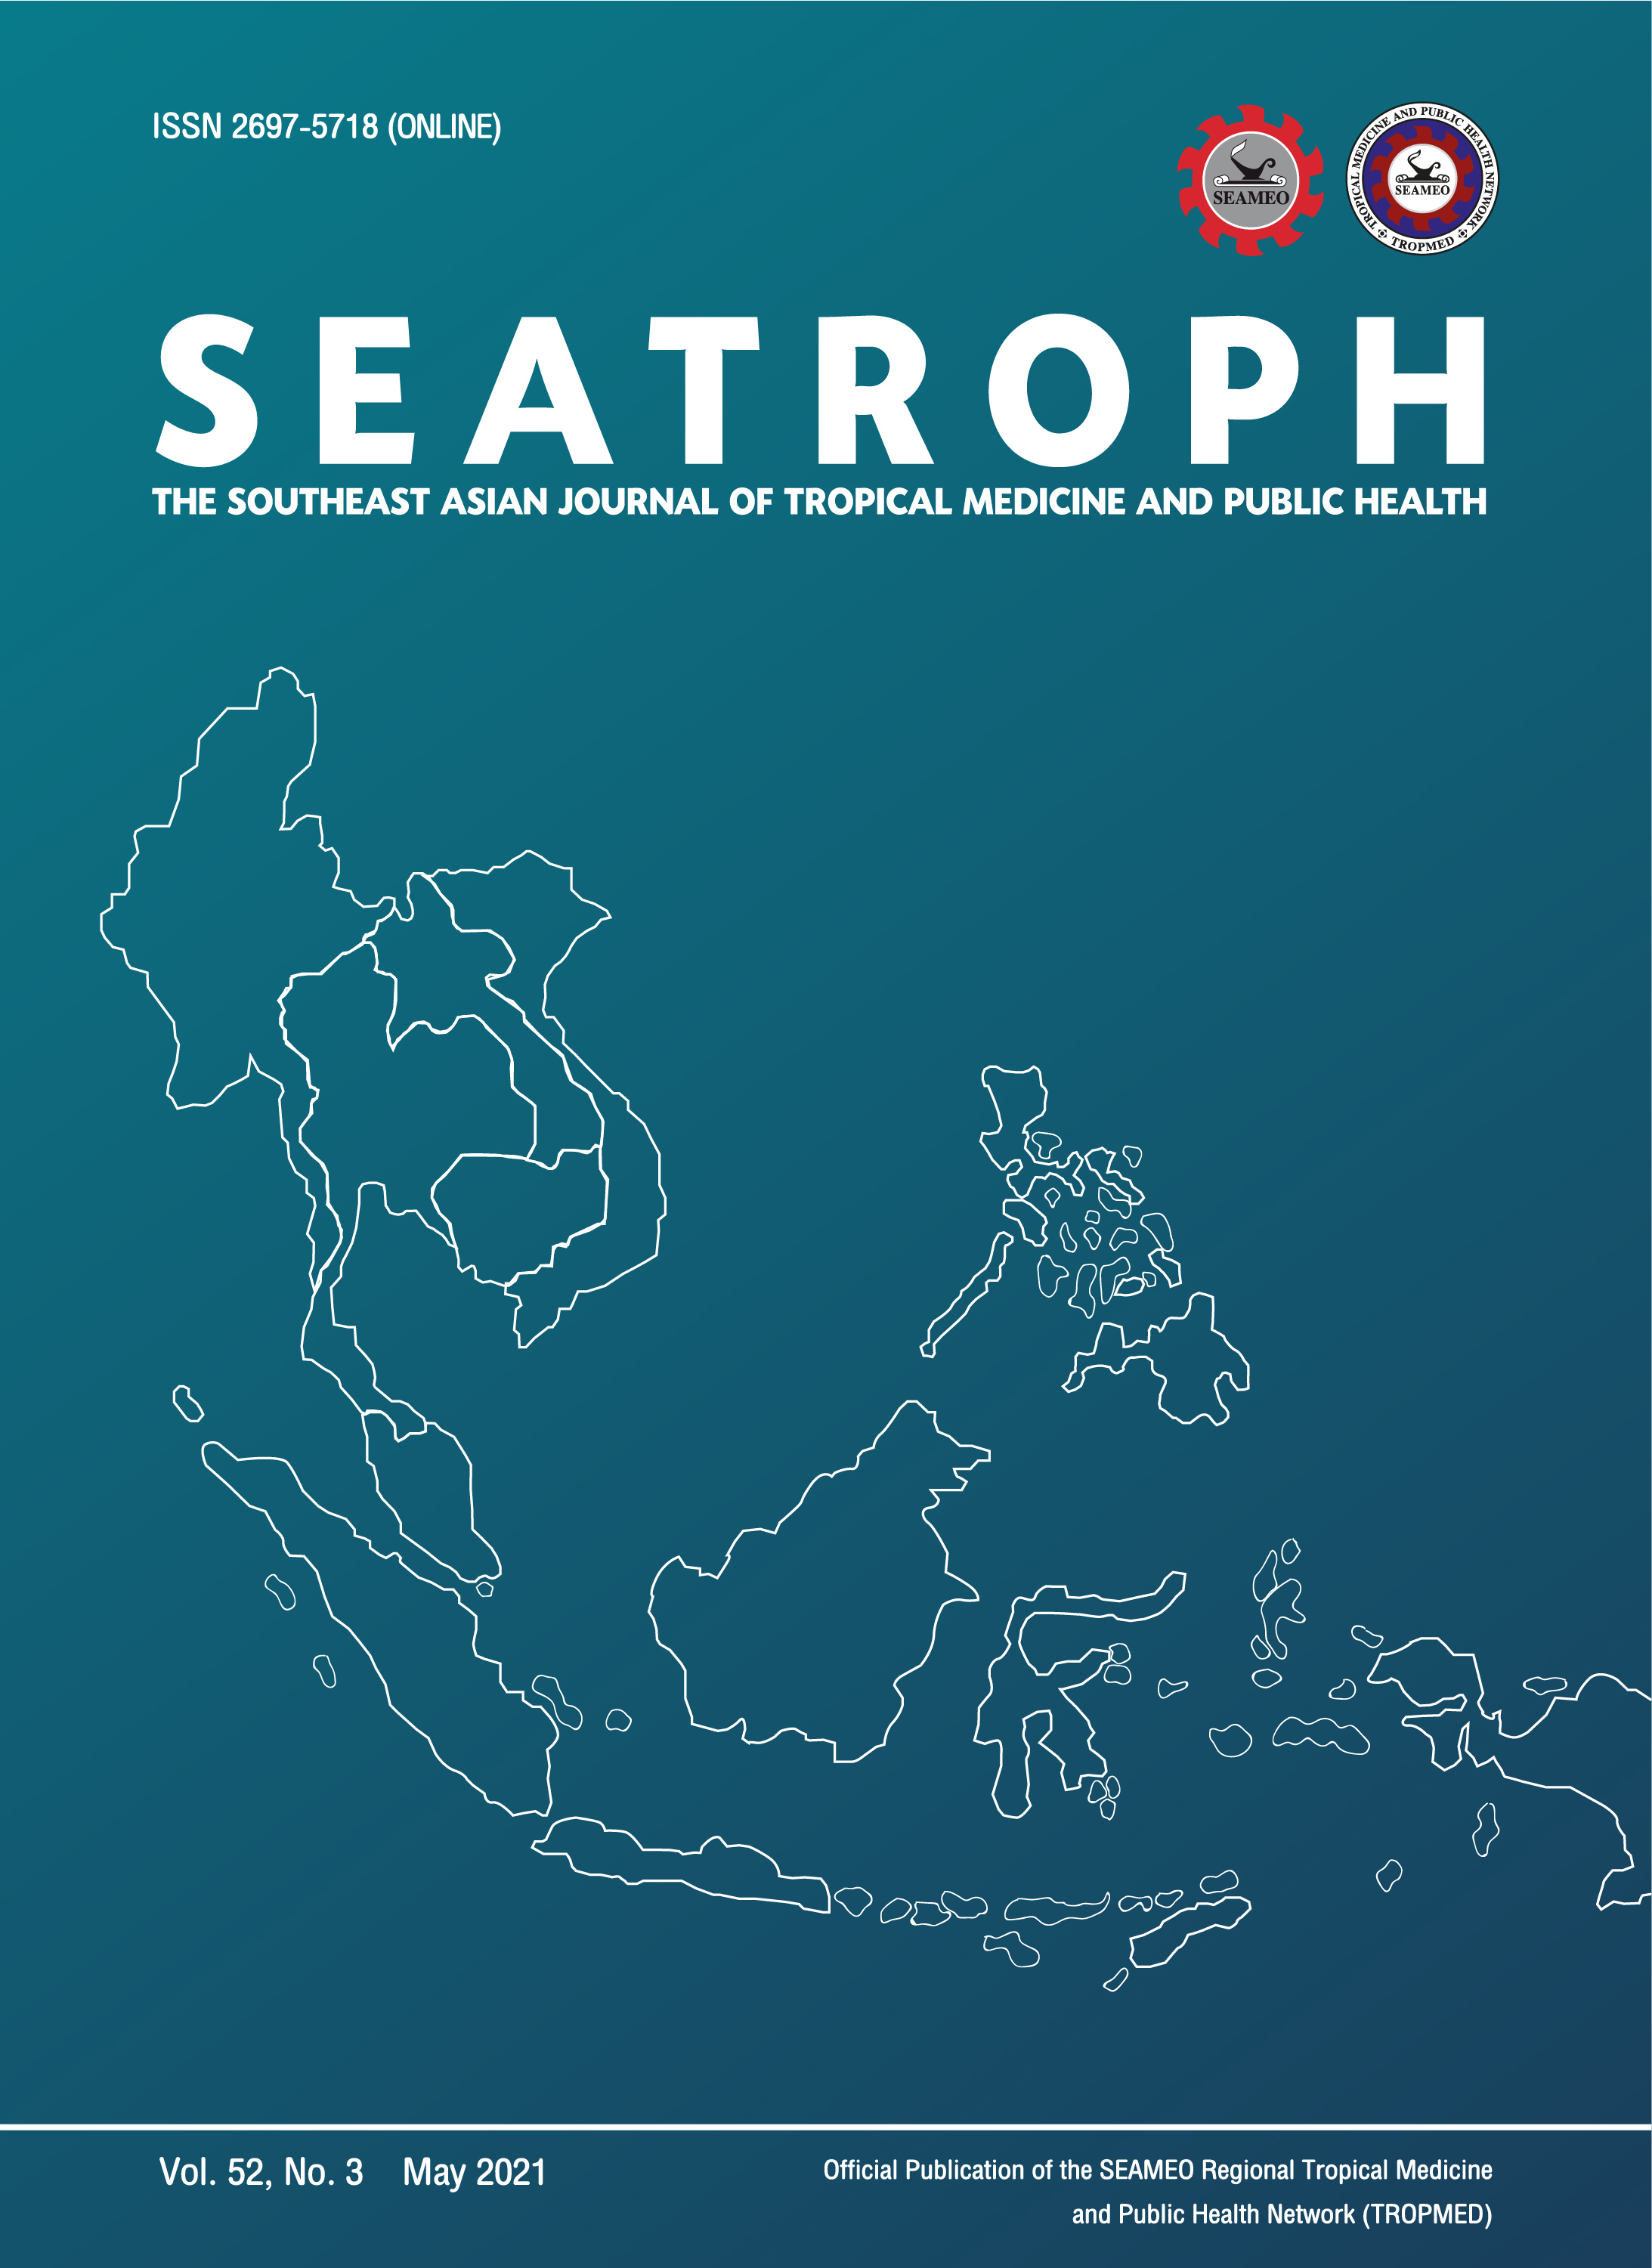 View Vol. 52 No. 3 (2021): THE SOUTHEAST ASIAN JOURNAL OF TROPICAL MEDICINE AND PUBLIC HEALTH